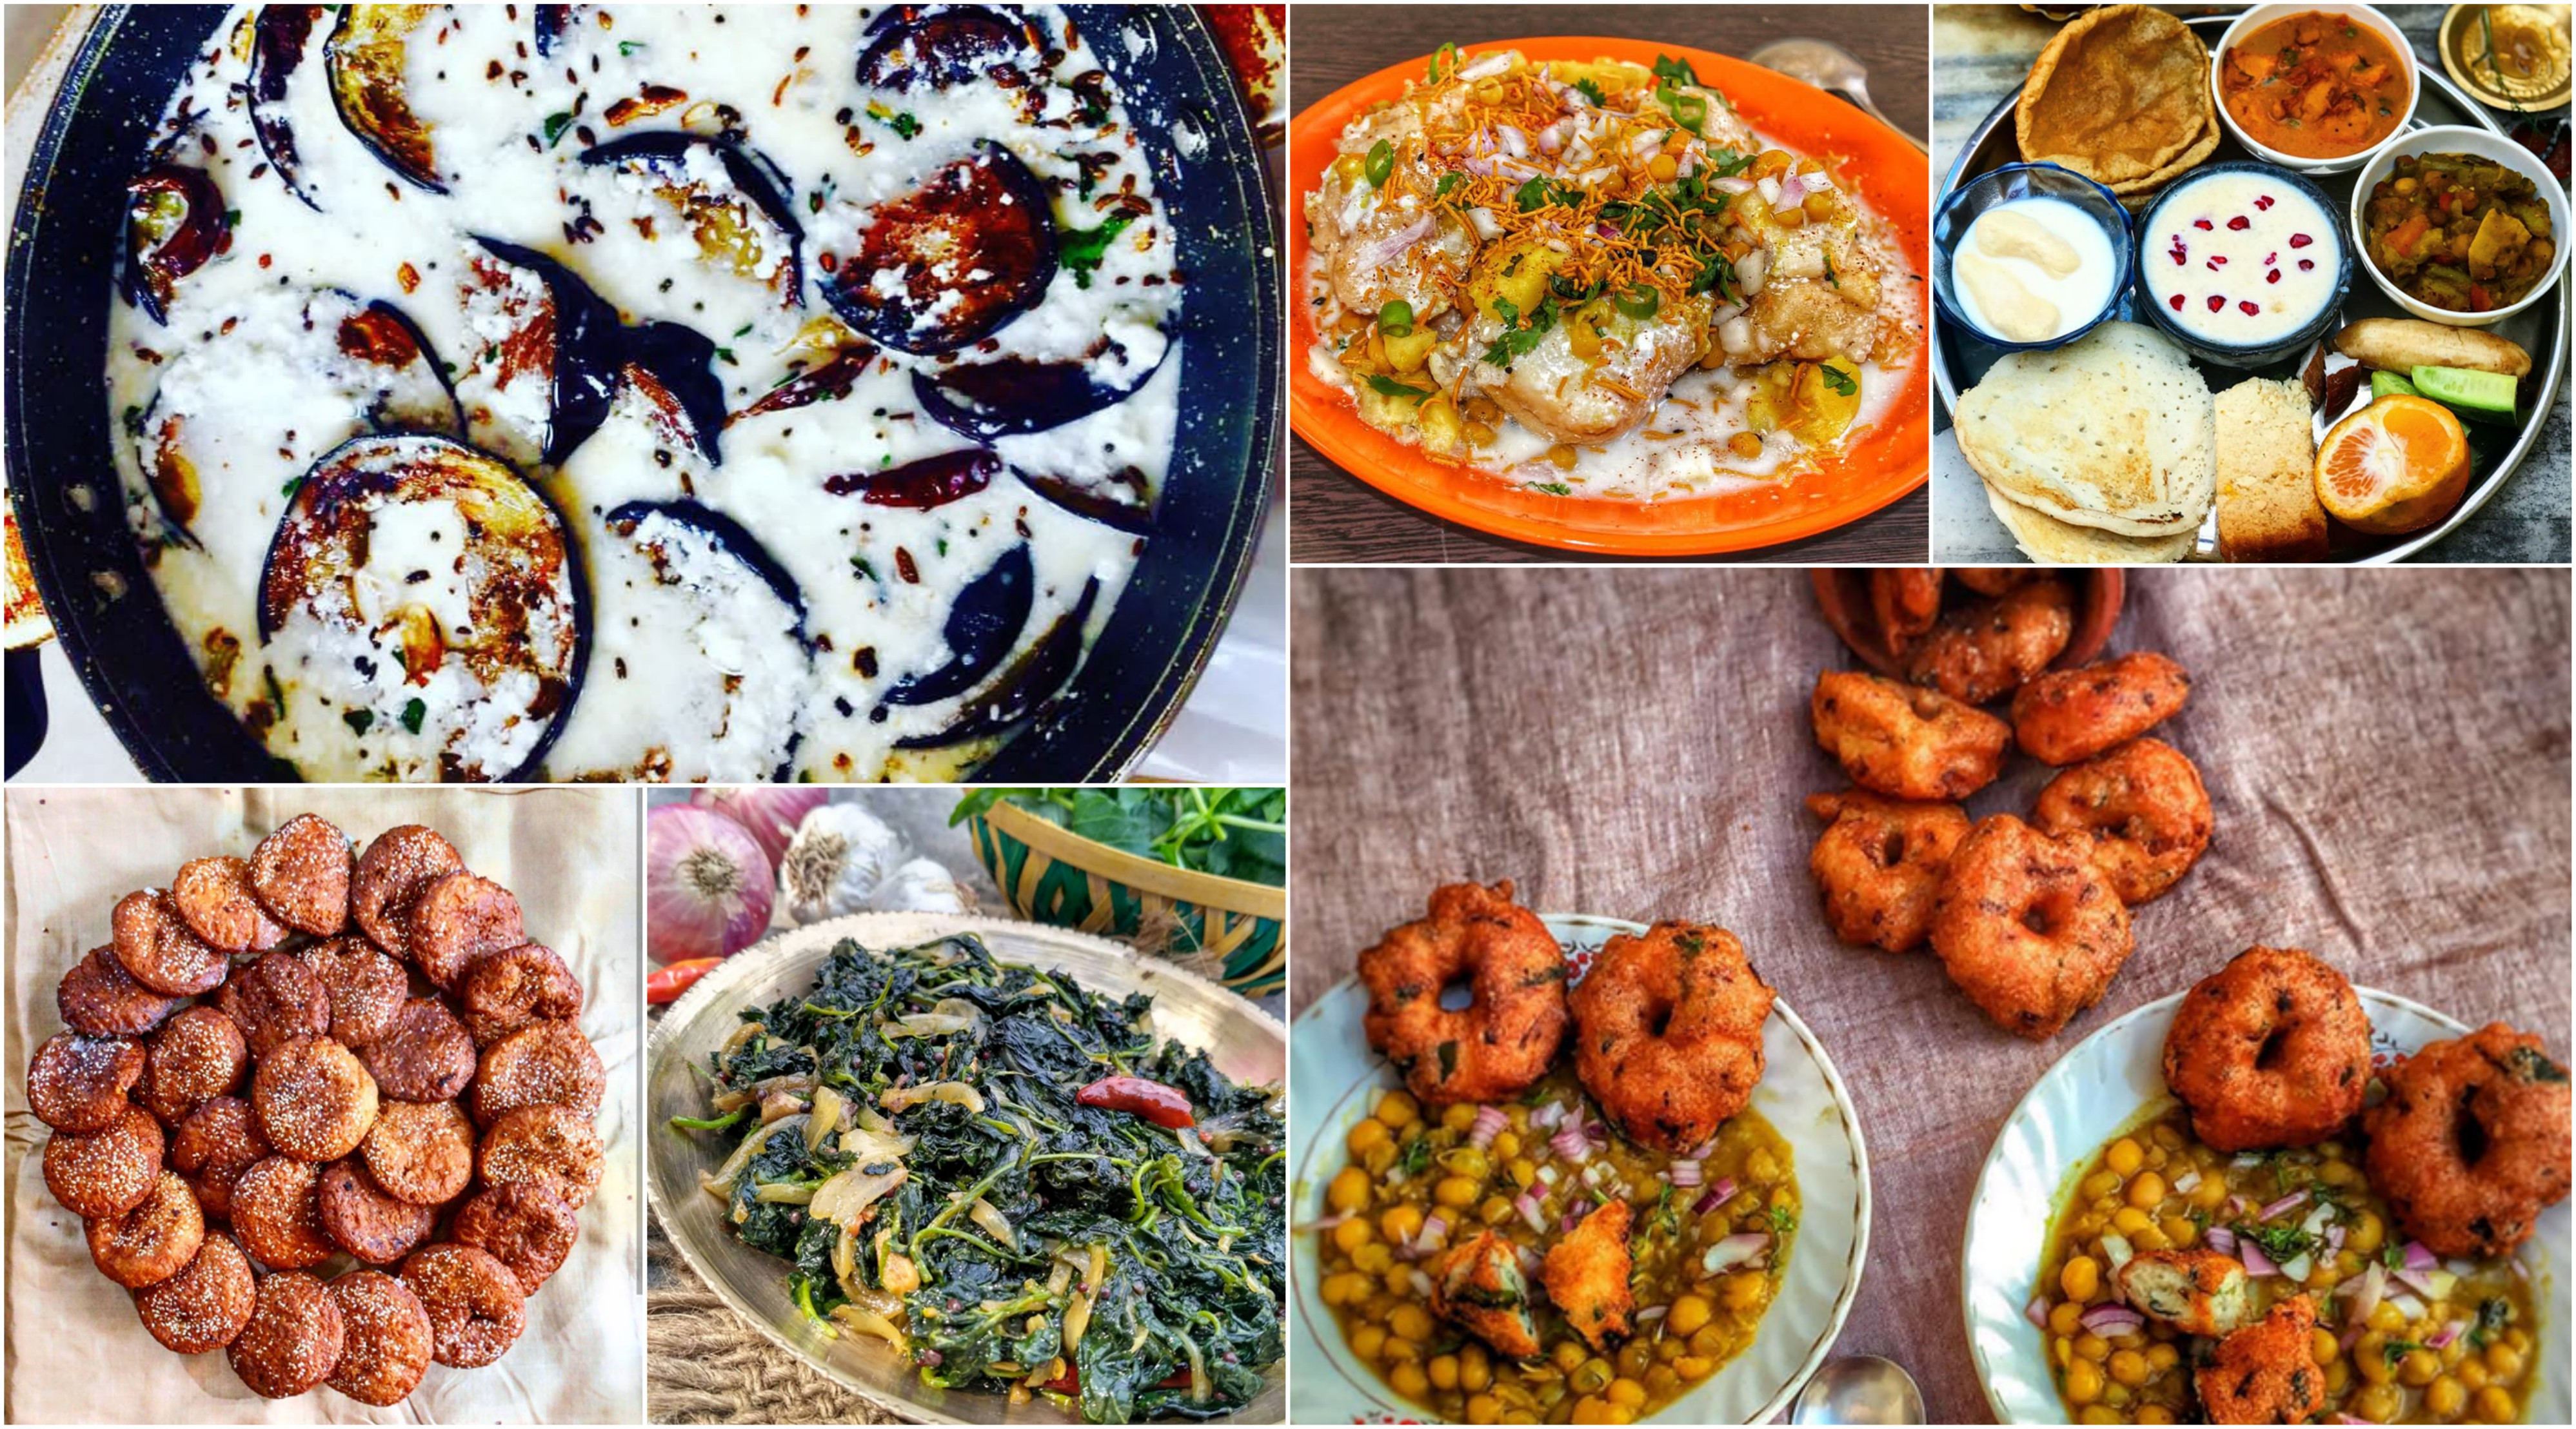 These odisha food bloggers on instagram will make you drool these odisha food bloggers on instagram will make you drool odishasuntimes forumfinder Gallery